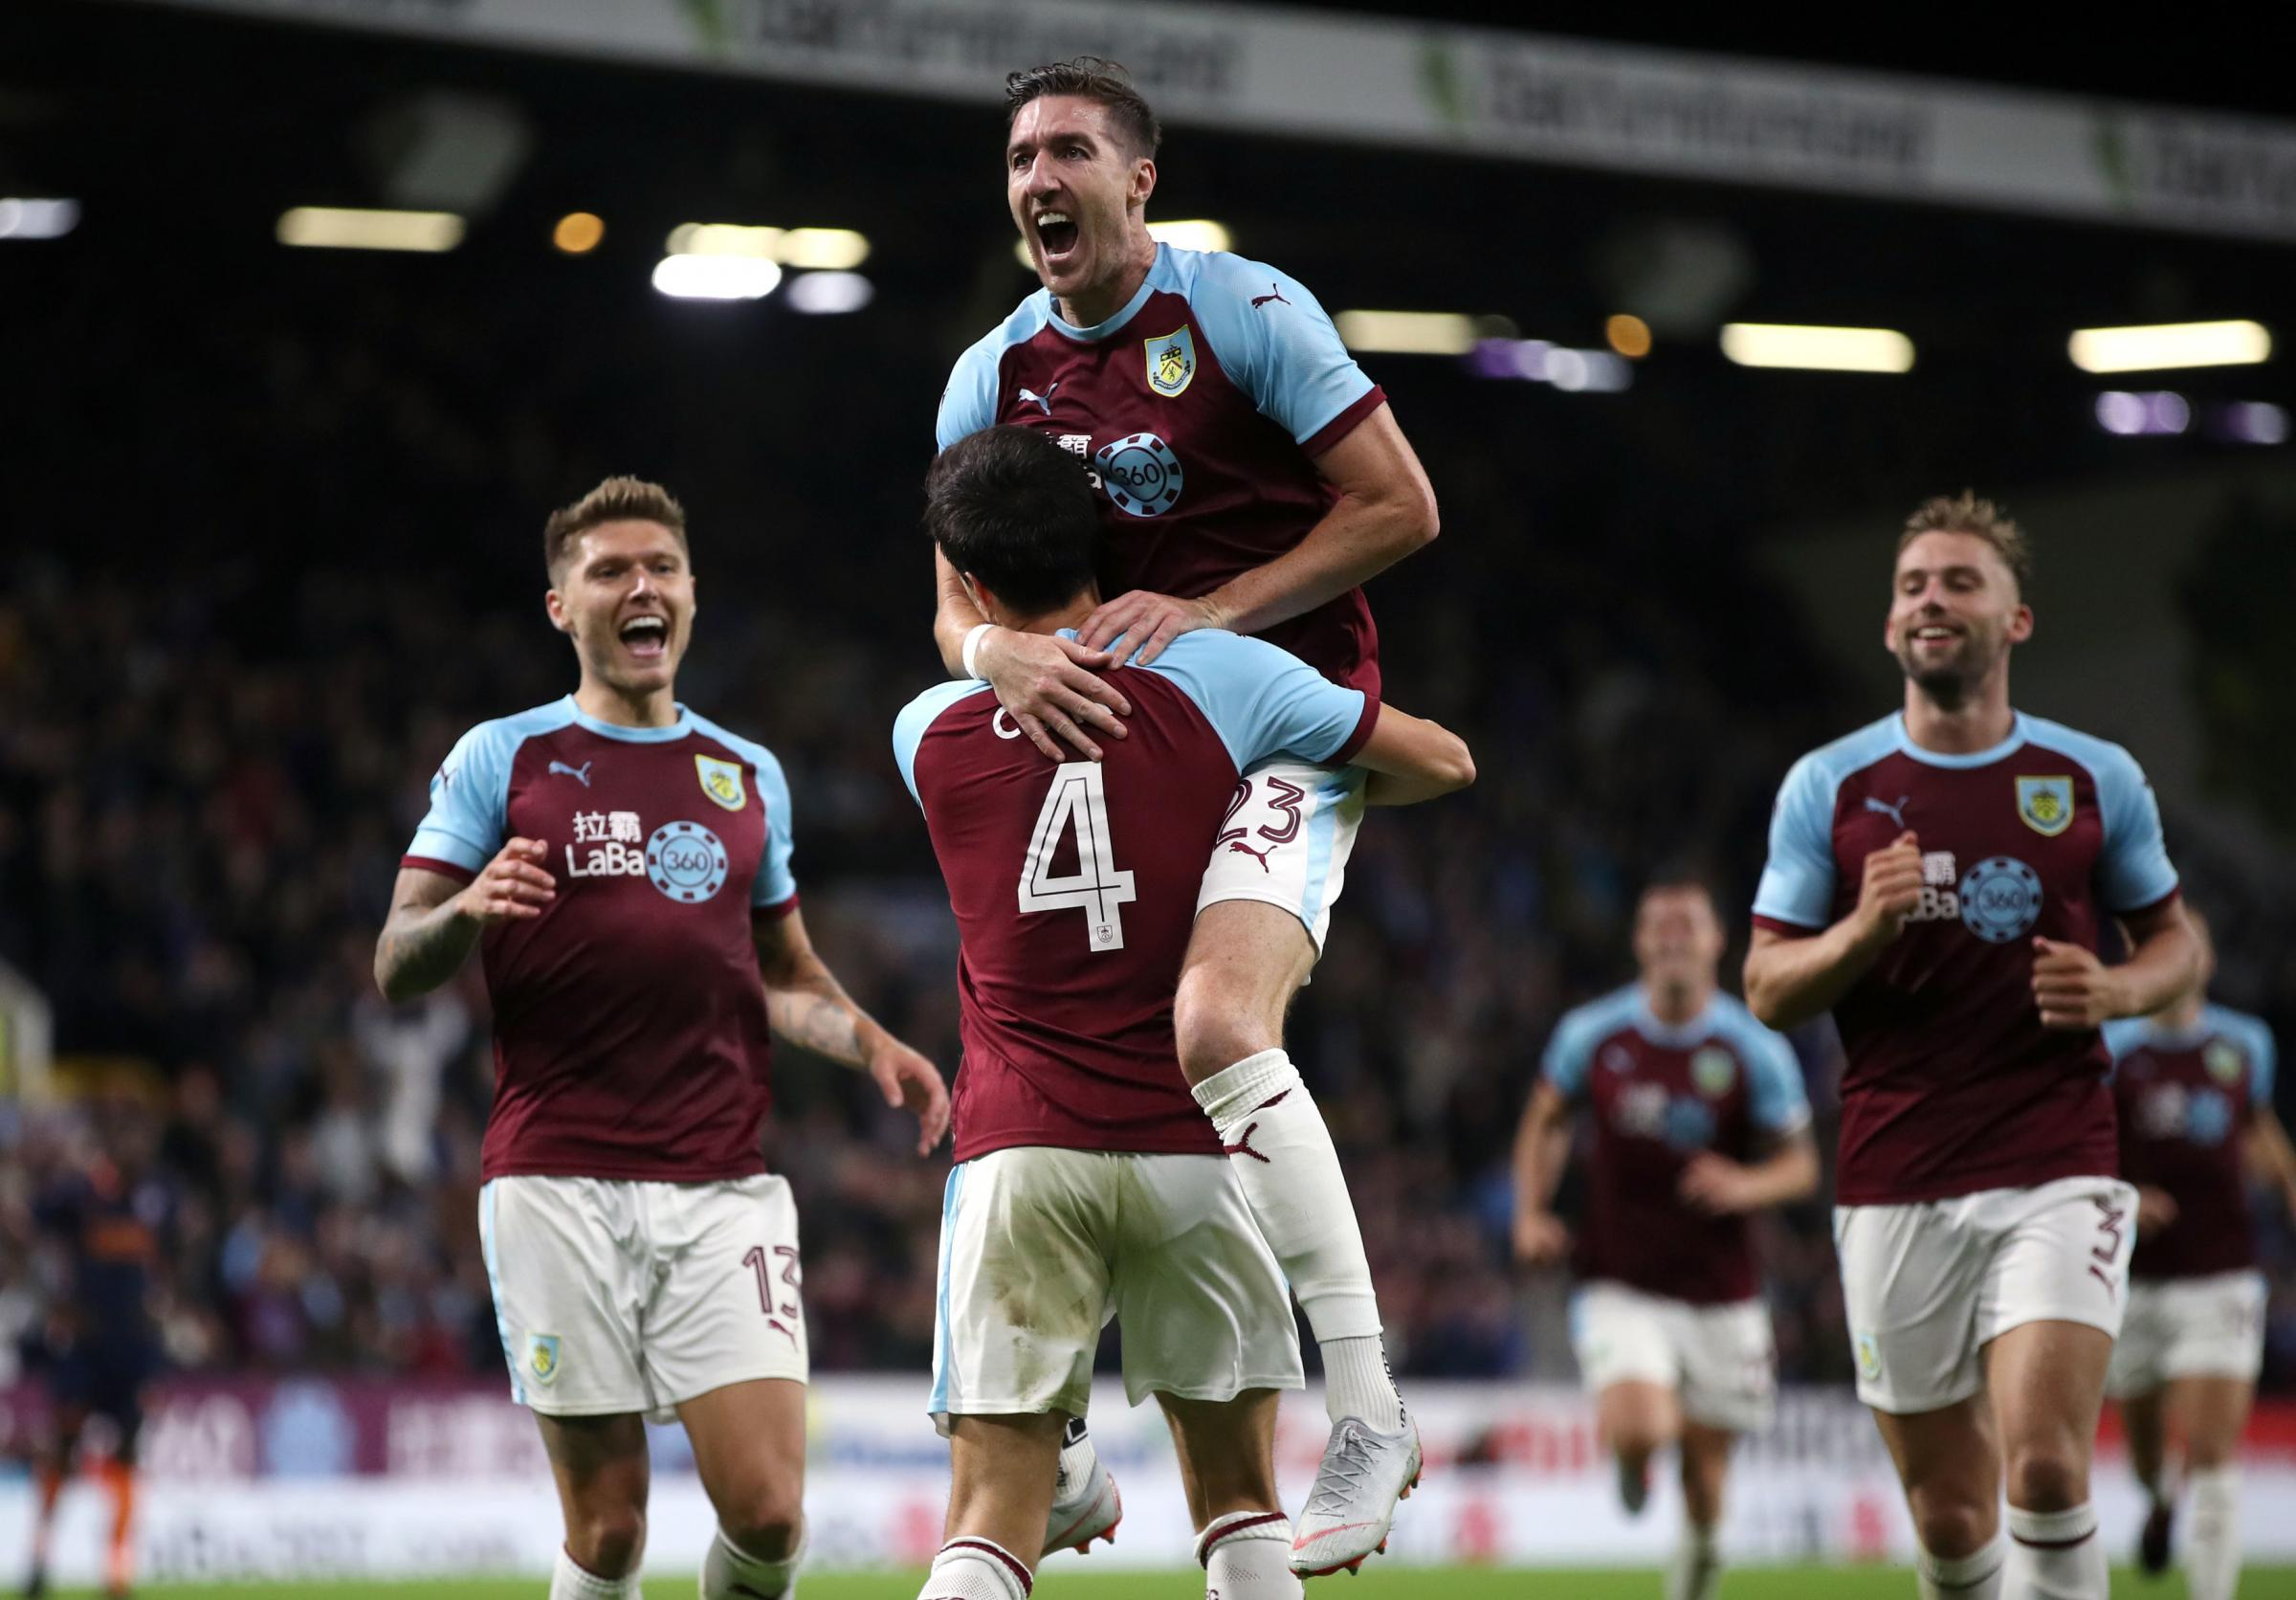 Stephen Ward will leave Burnley when his contract expires in summer